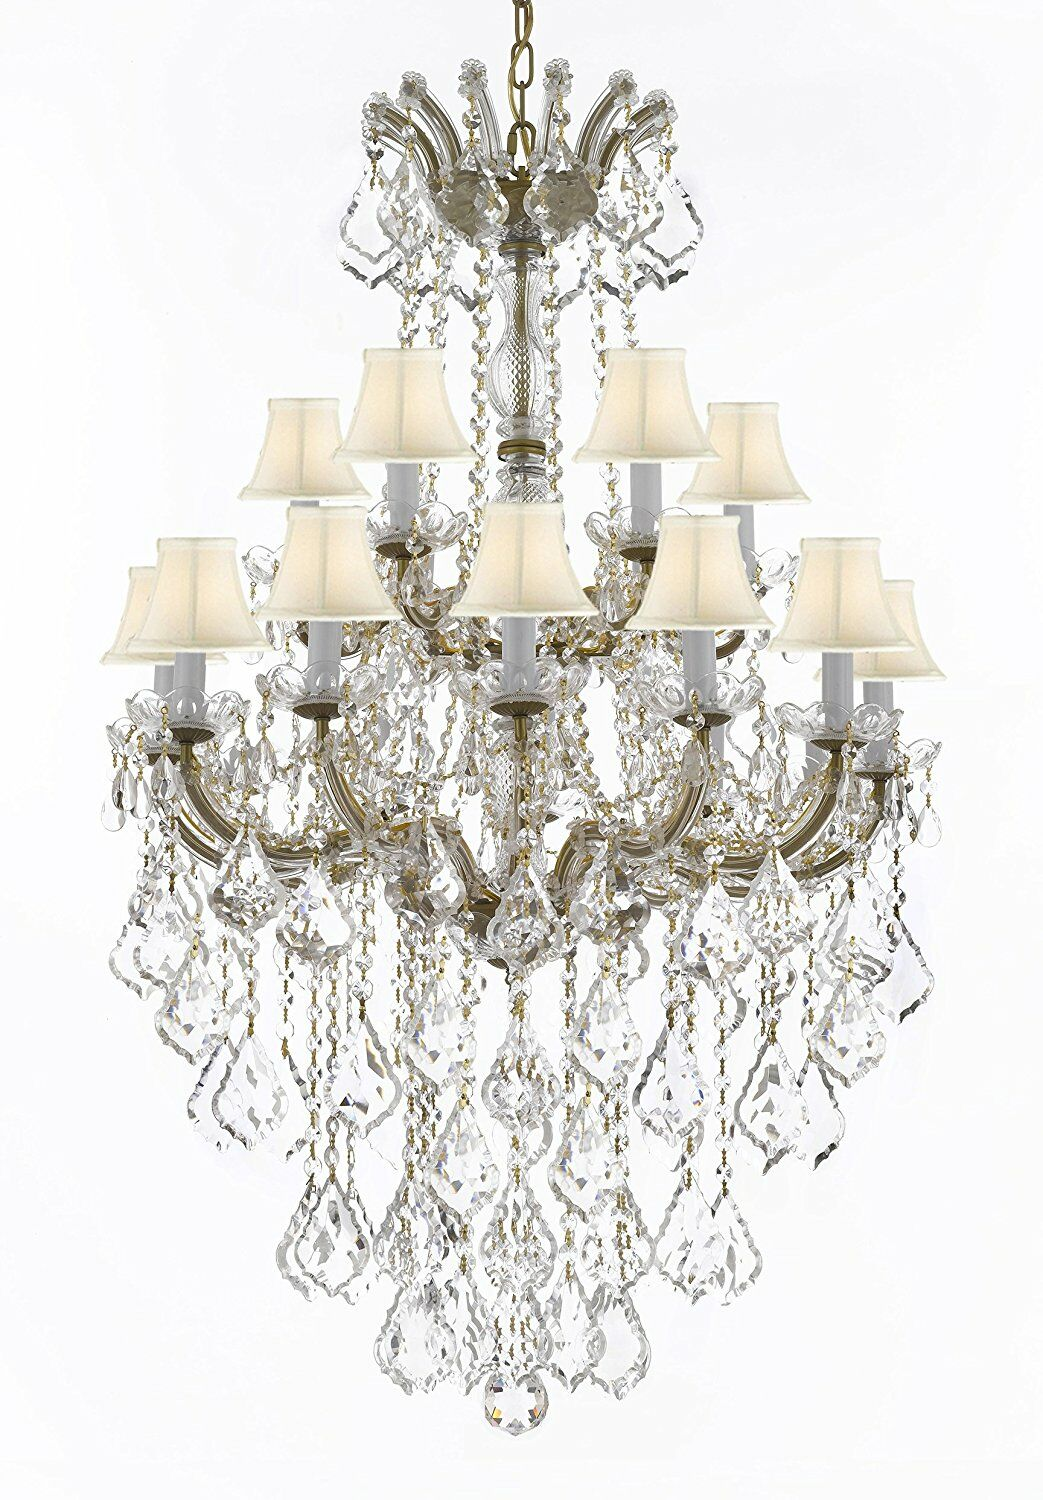 Alvarado 18-Light Bell Fabric Shade Shaded Chandelier Color: Gold, Shade Color: White